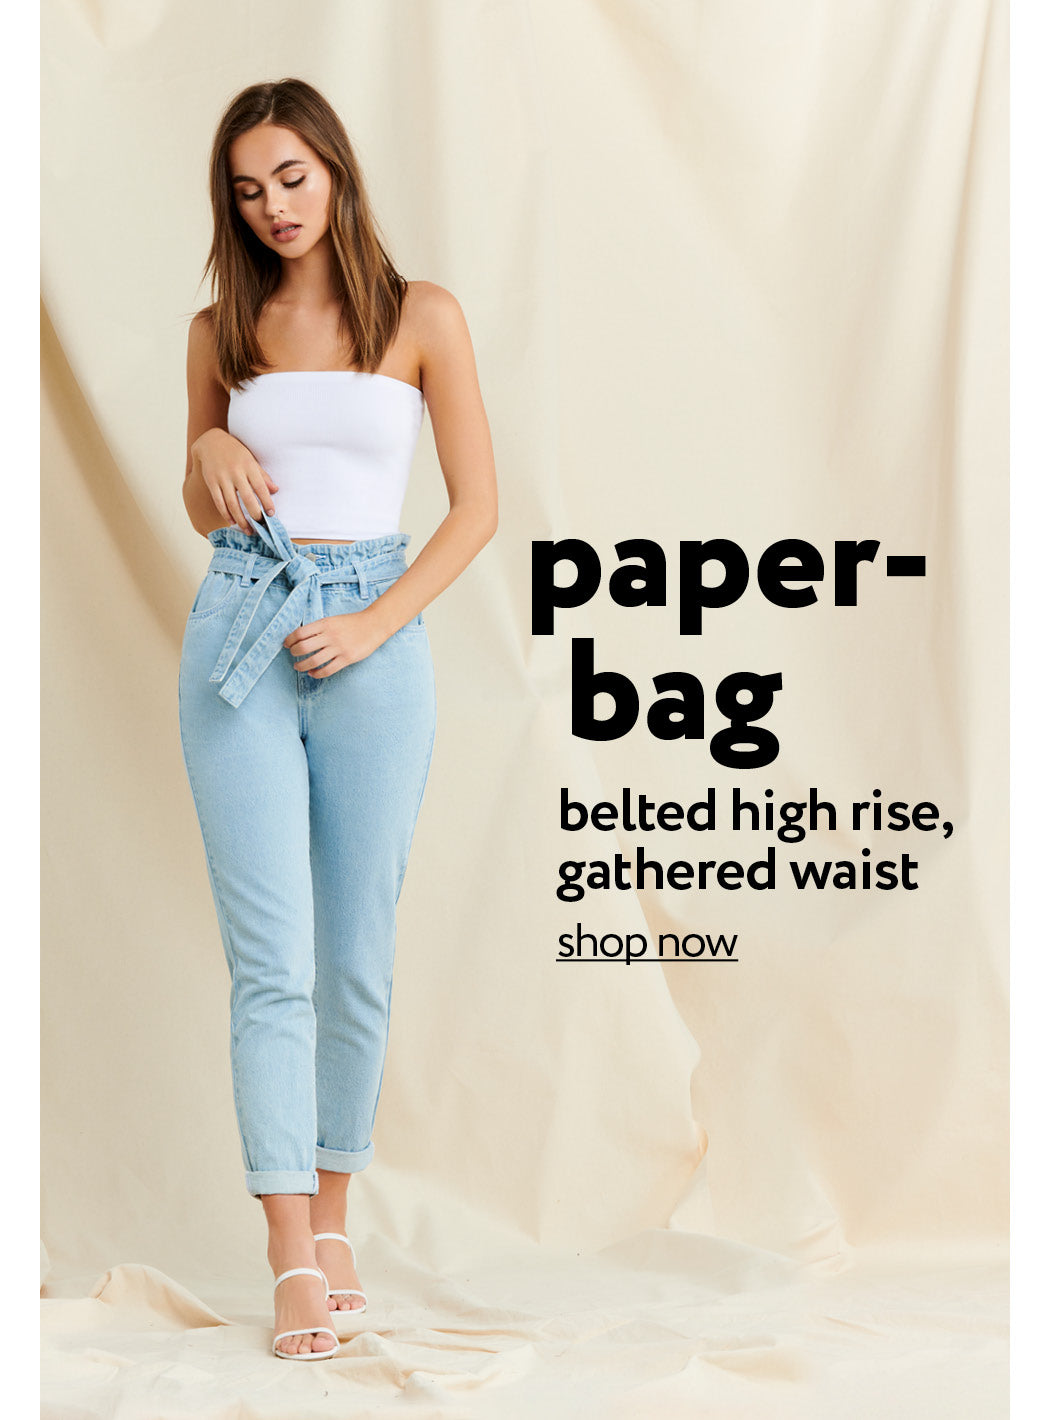 Urban Planet | Paperbag - Belted high rise, gathered waist - Shop Now